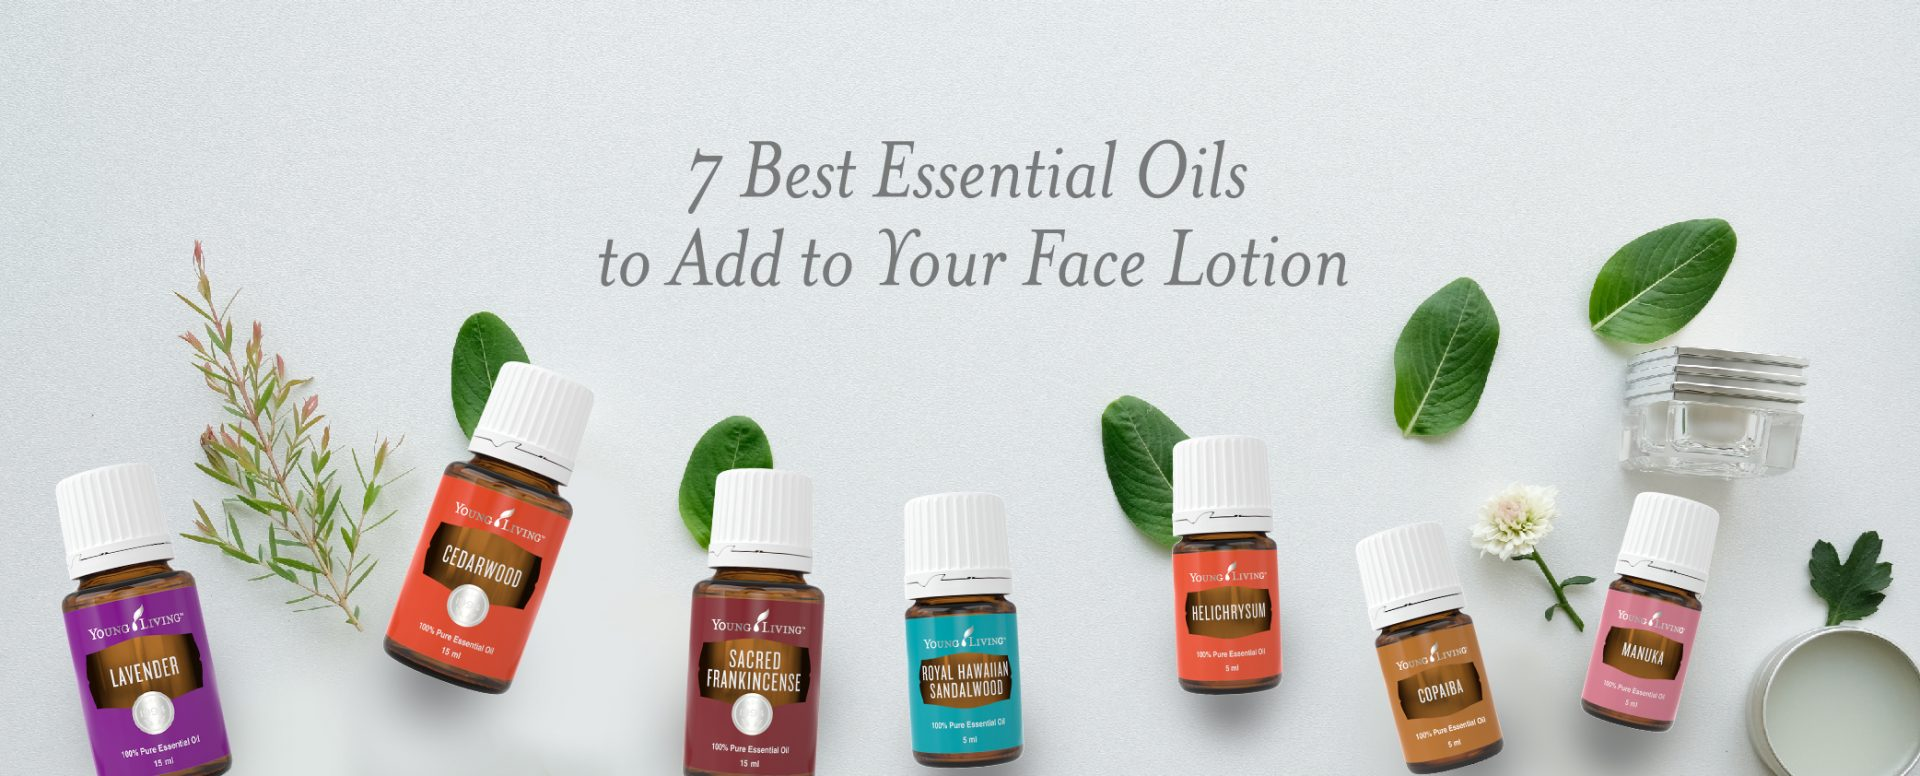 Collection of Young Living Essential Oils for face